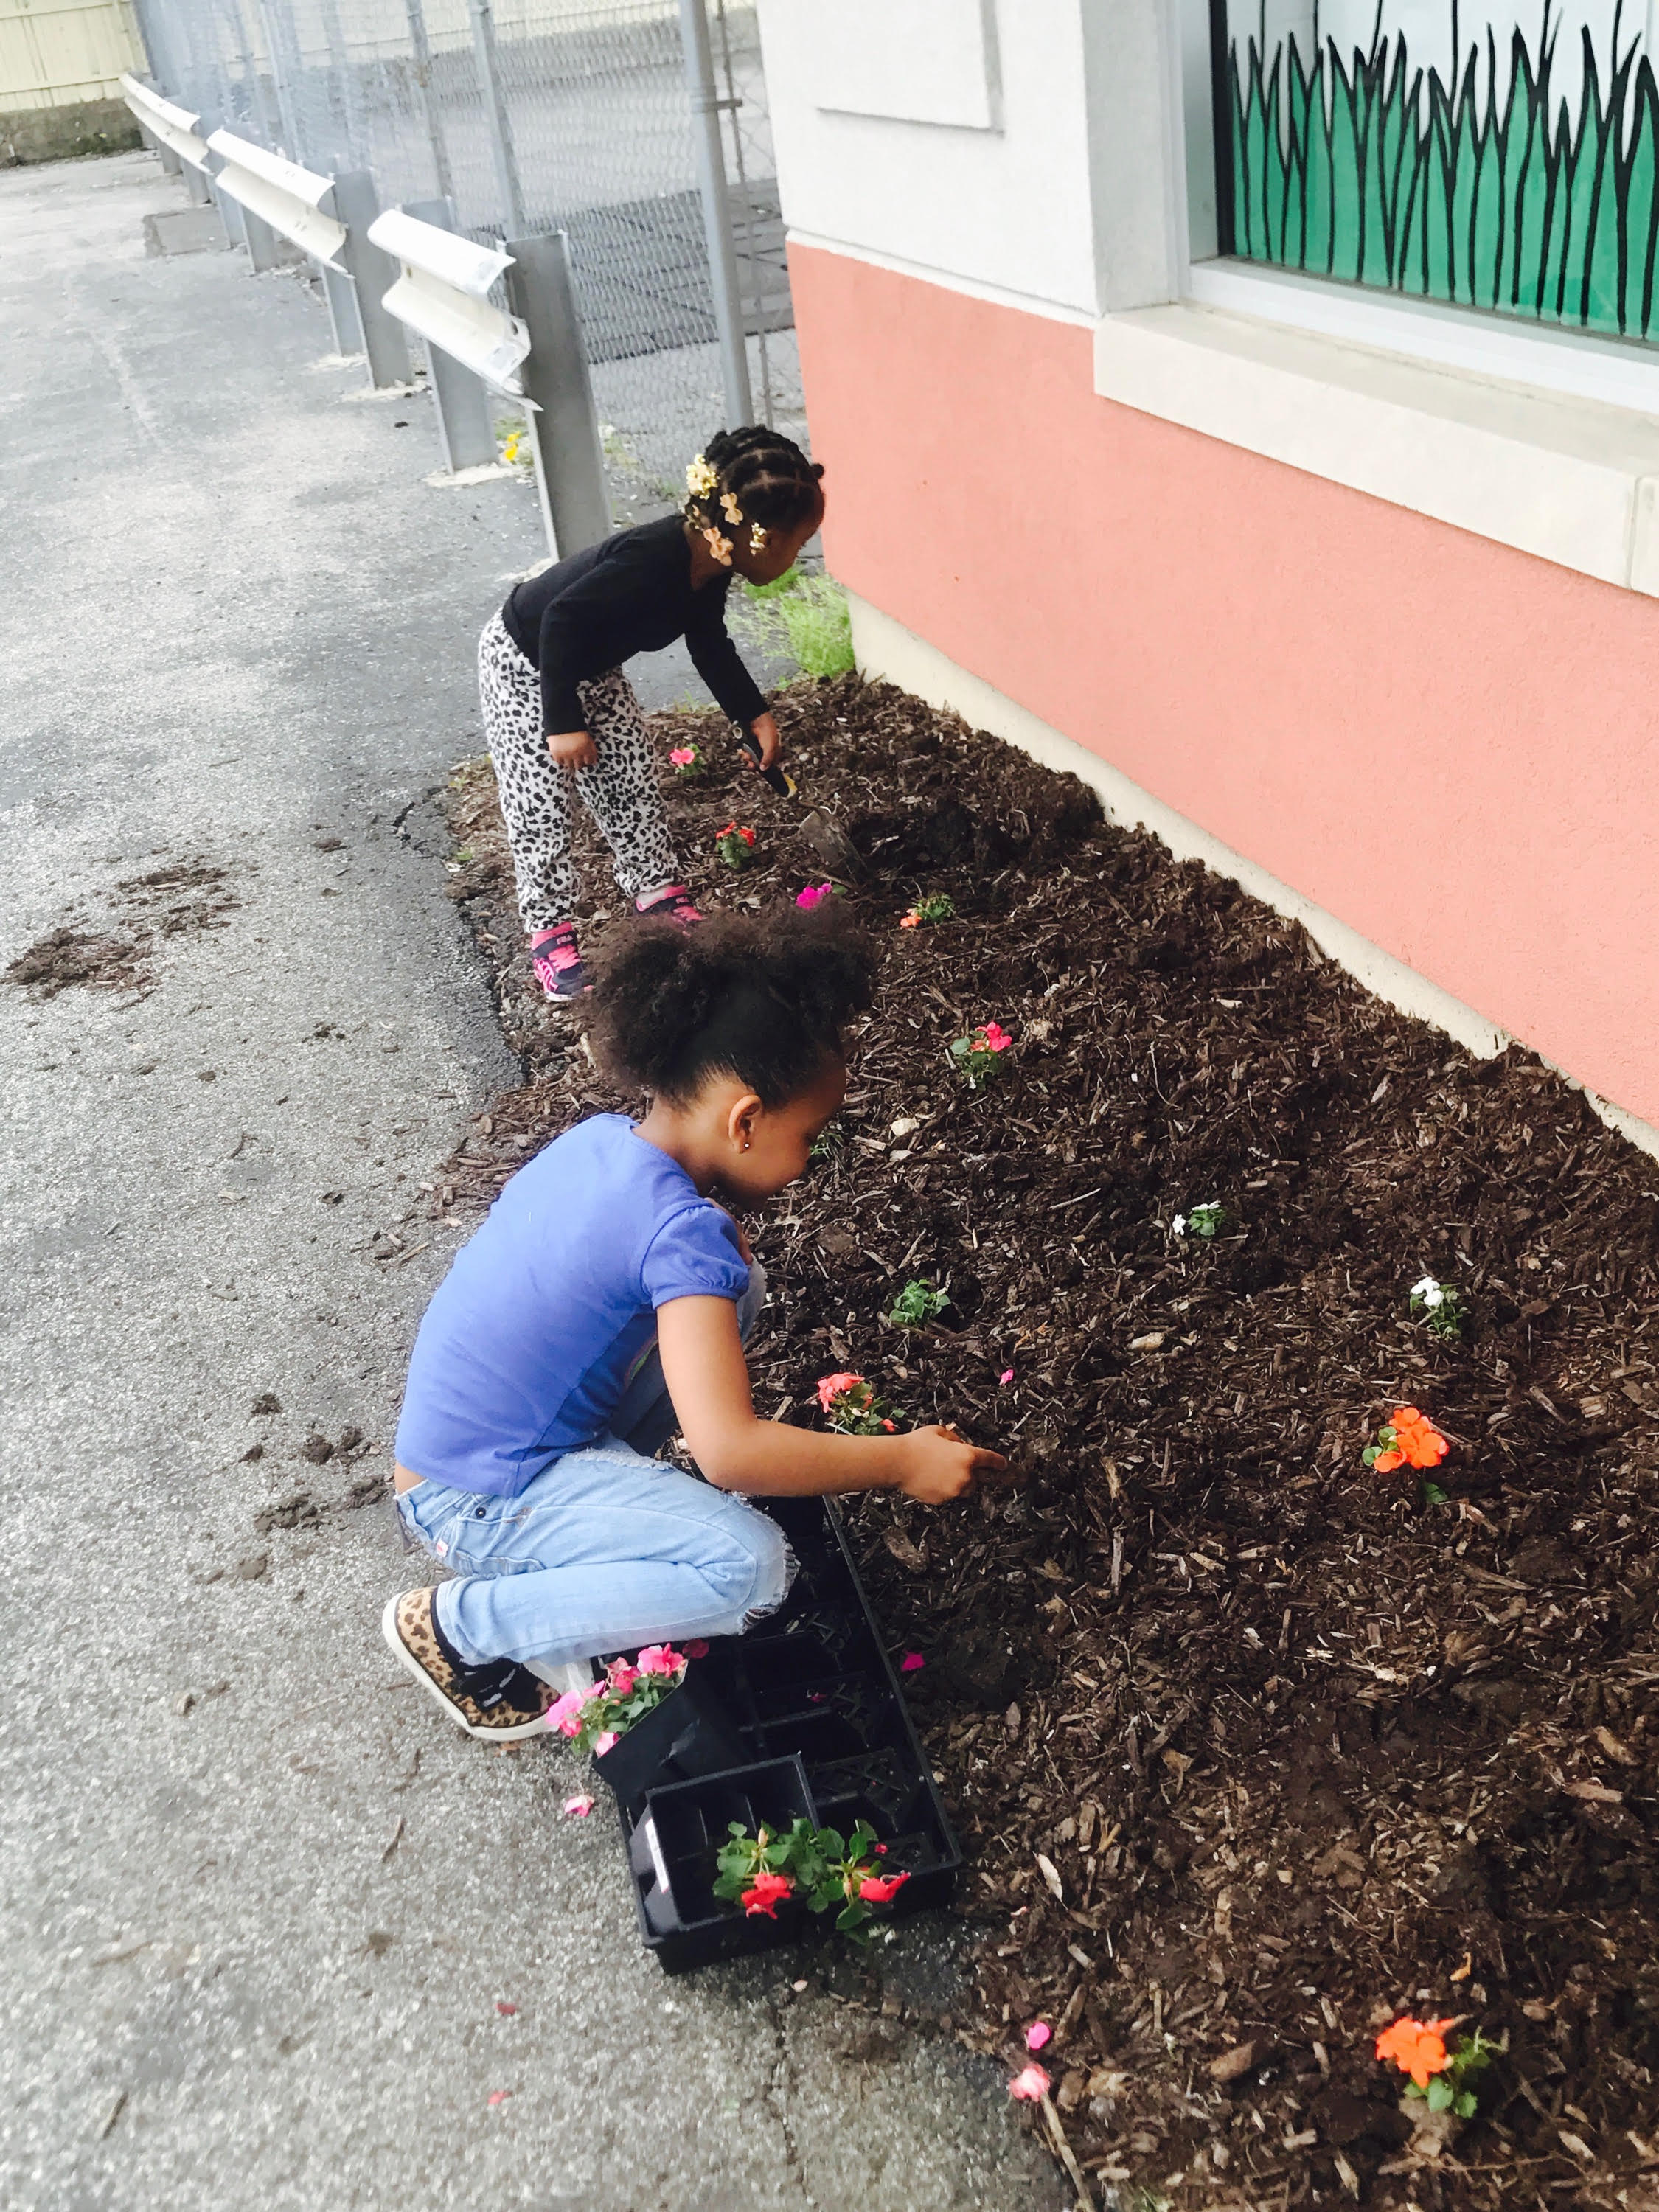 Planting flowers at First Years University daycare in homewood